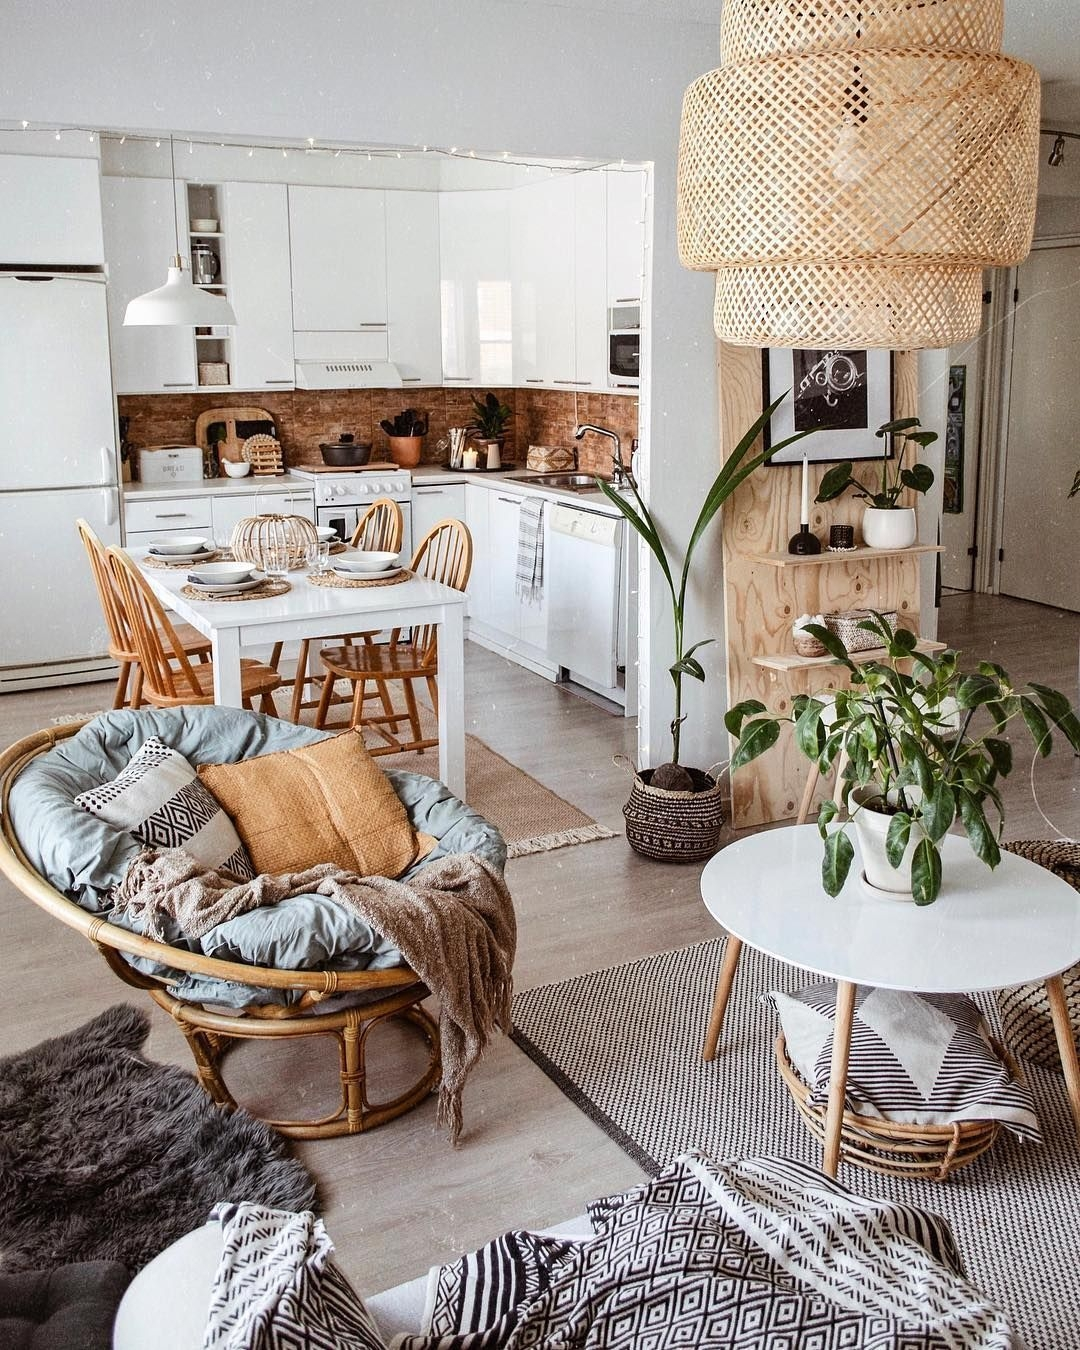 Unbelievable Boho Living Room Decor On A Budget Ideas Spaces Living Room Chairs On Delightful 36 Amazing Papasan Chair Design Ideas for Your Living Room On Boho Living Room Decor On A Budget Ideas Spaces Living Room Chairs